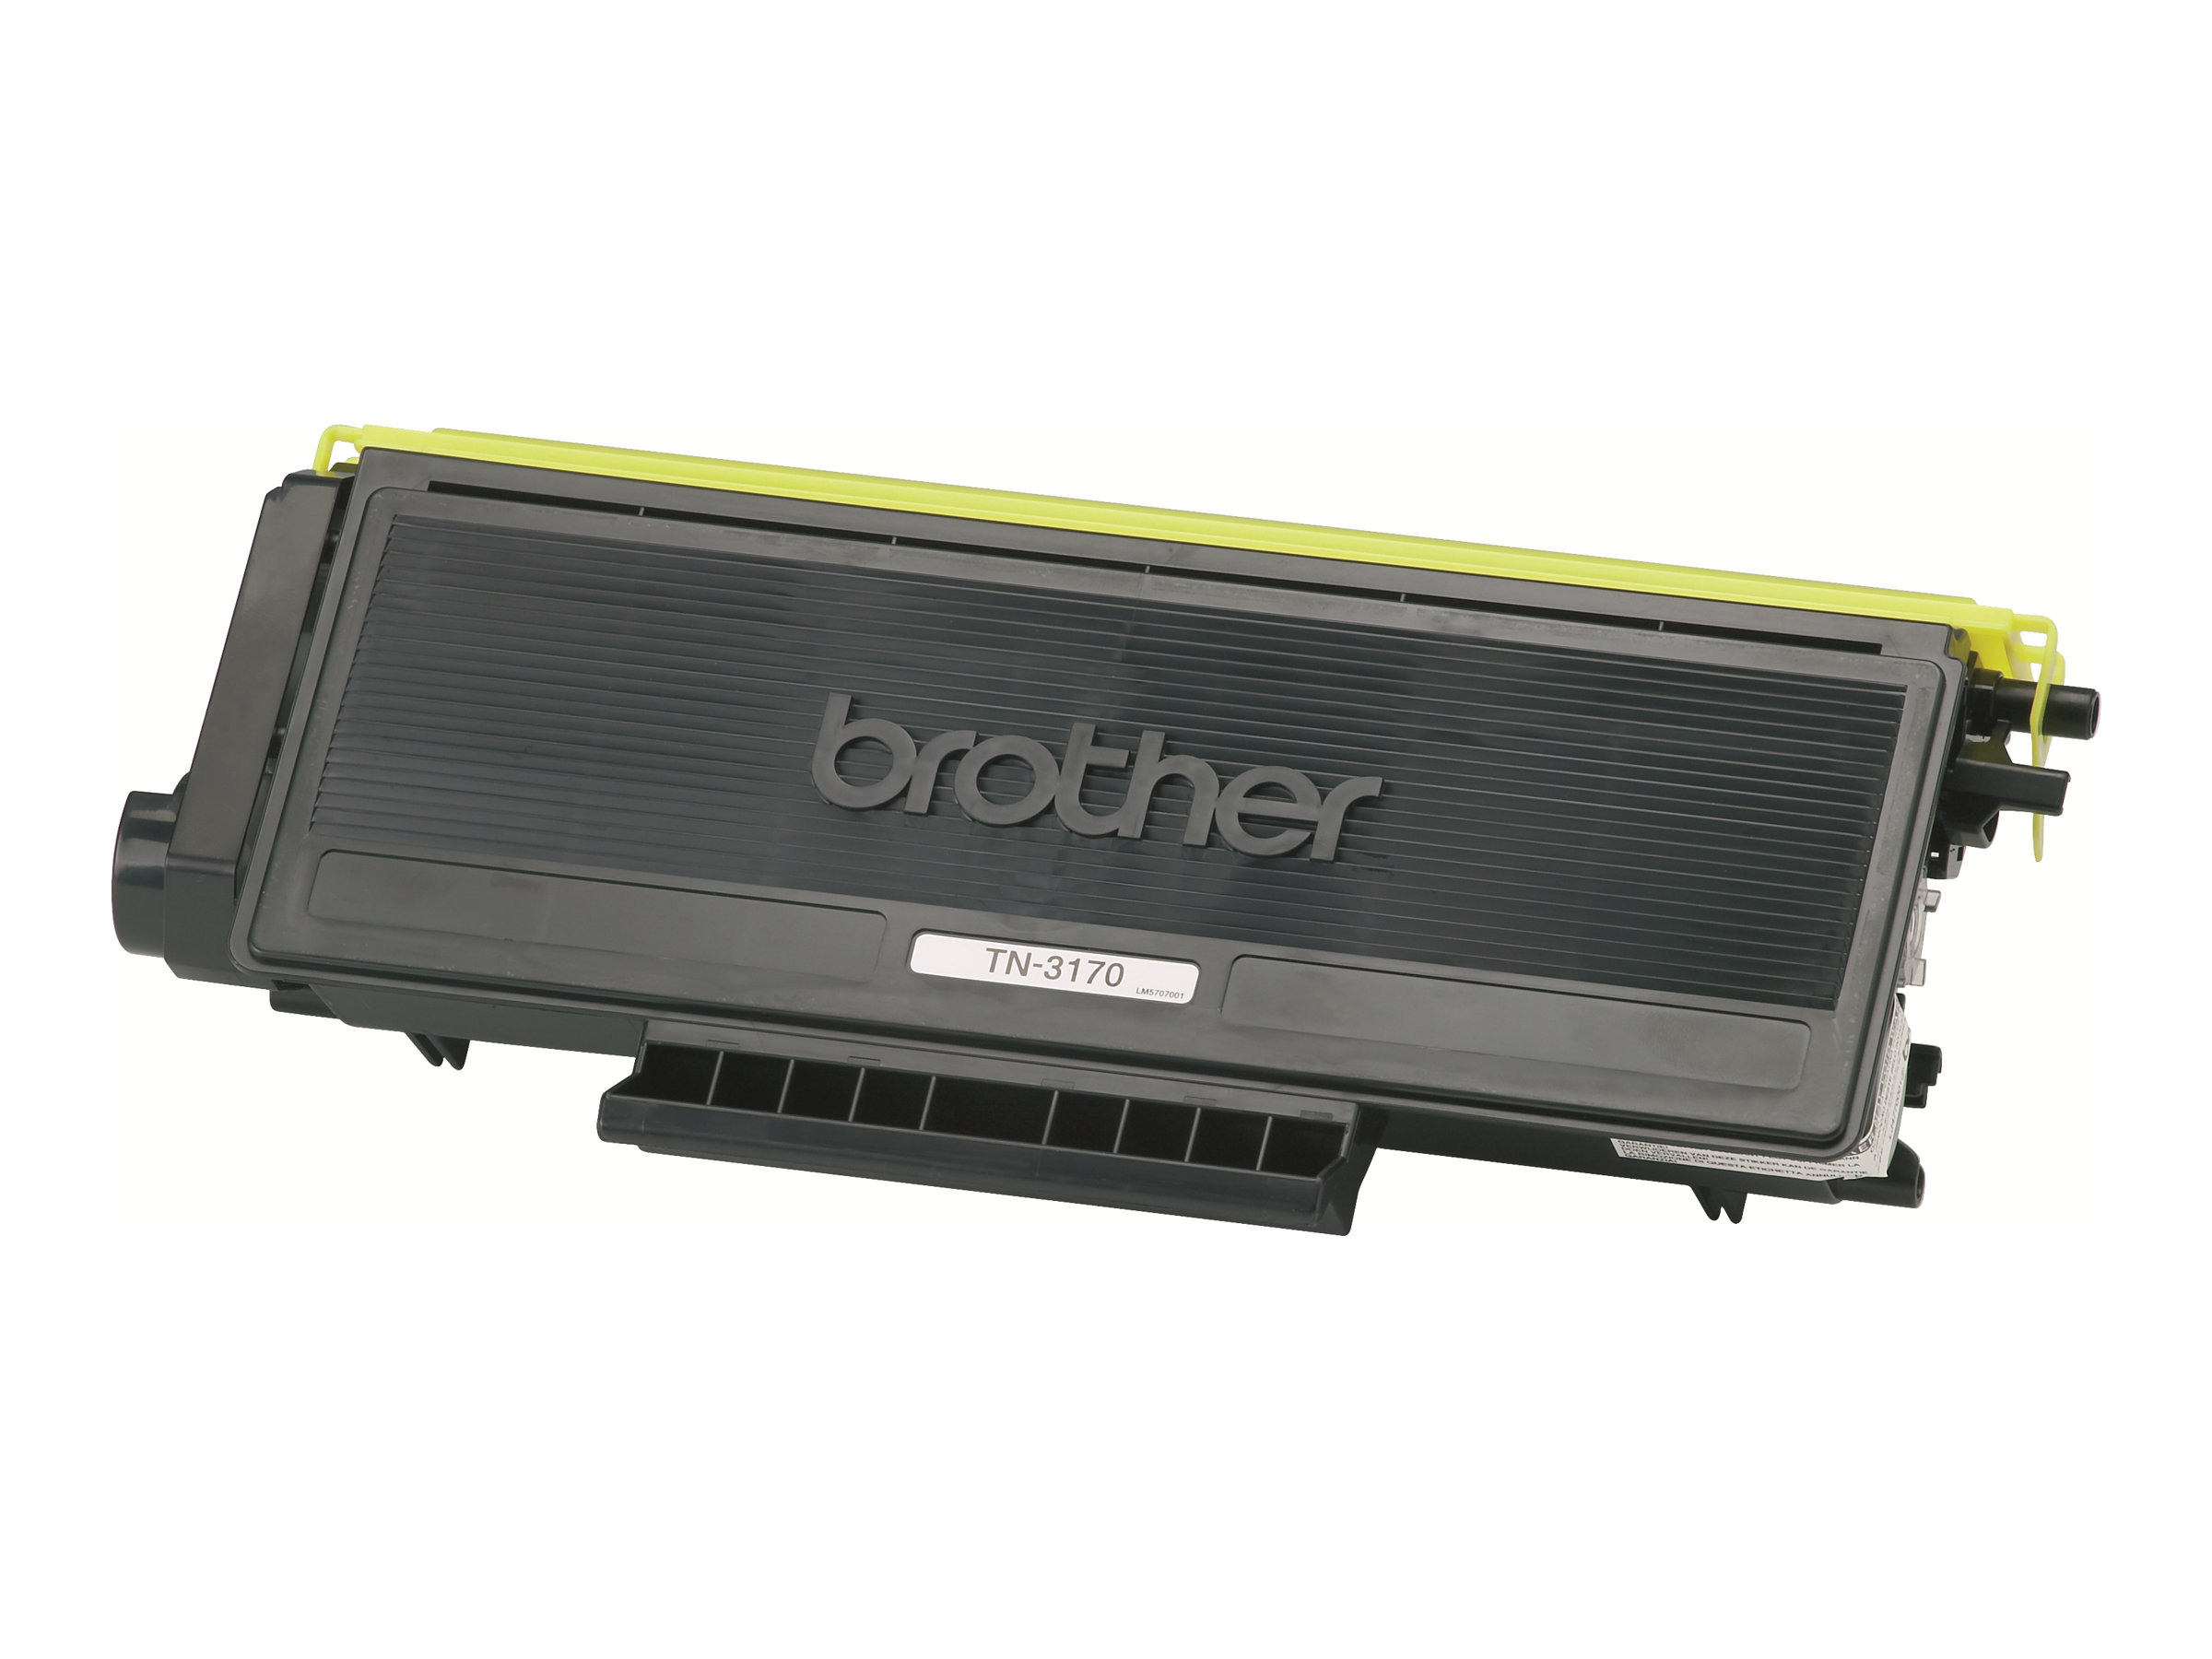 Brother TN3170 - Schwarz - Original - Tonerpatrone - für Brother DCP-8060, 8065, HL-5240, 5250, 5270, 5280, MFC-8460, 8860, 8870